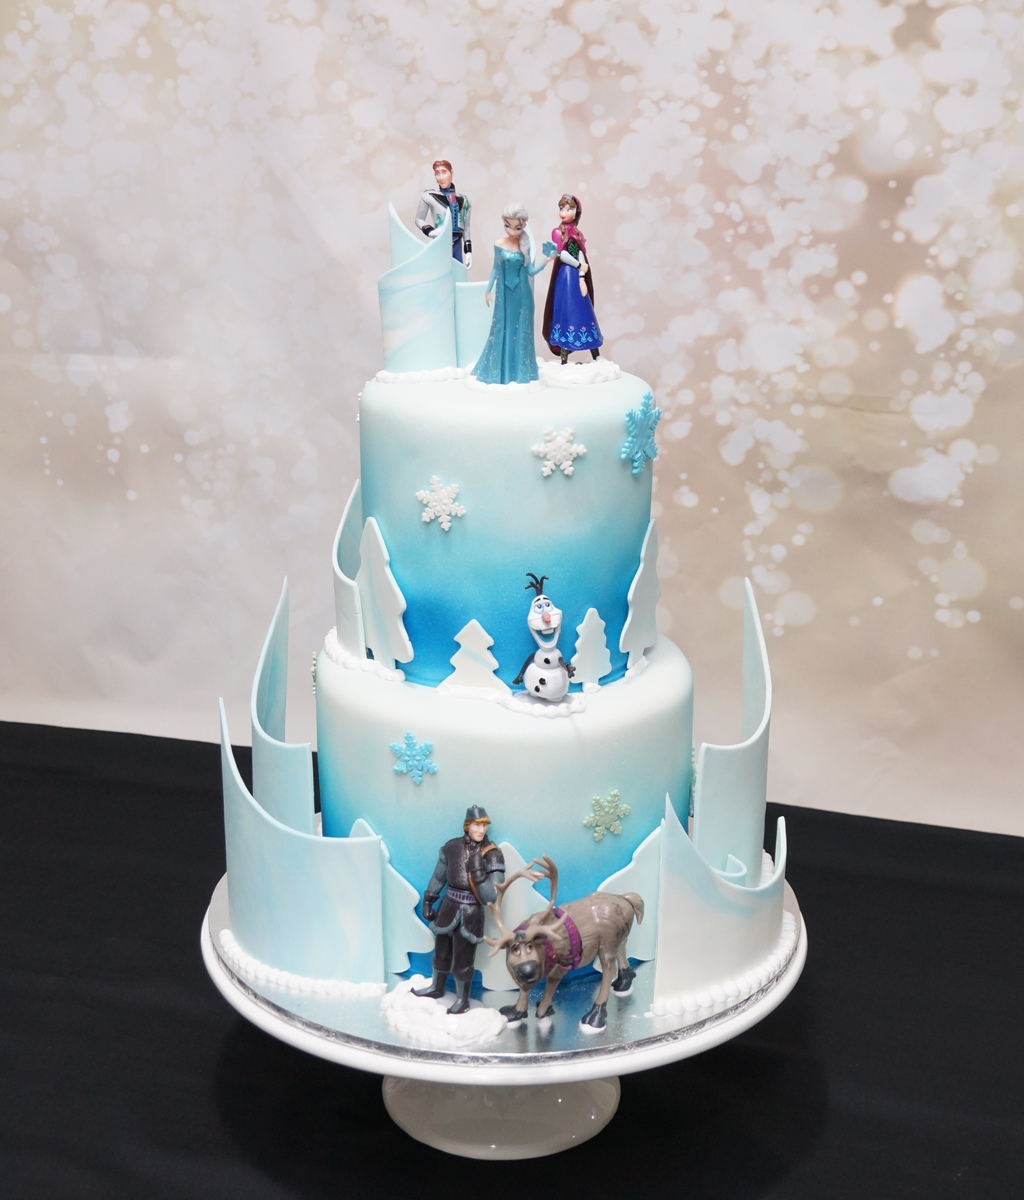 2 Tier Frozen Cake 4